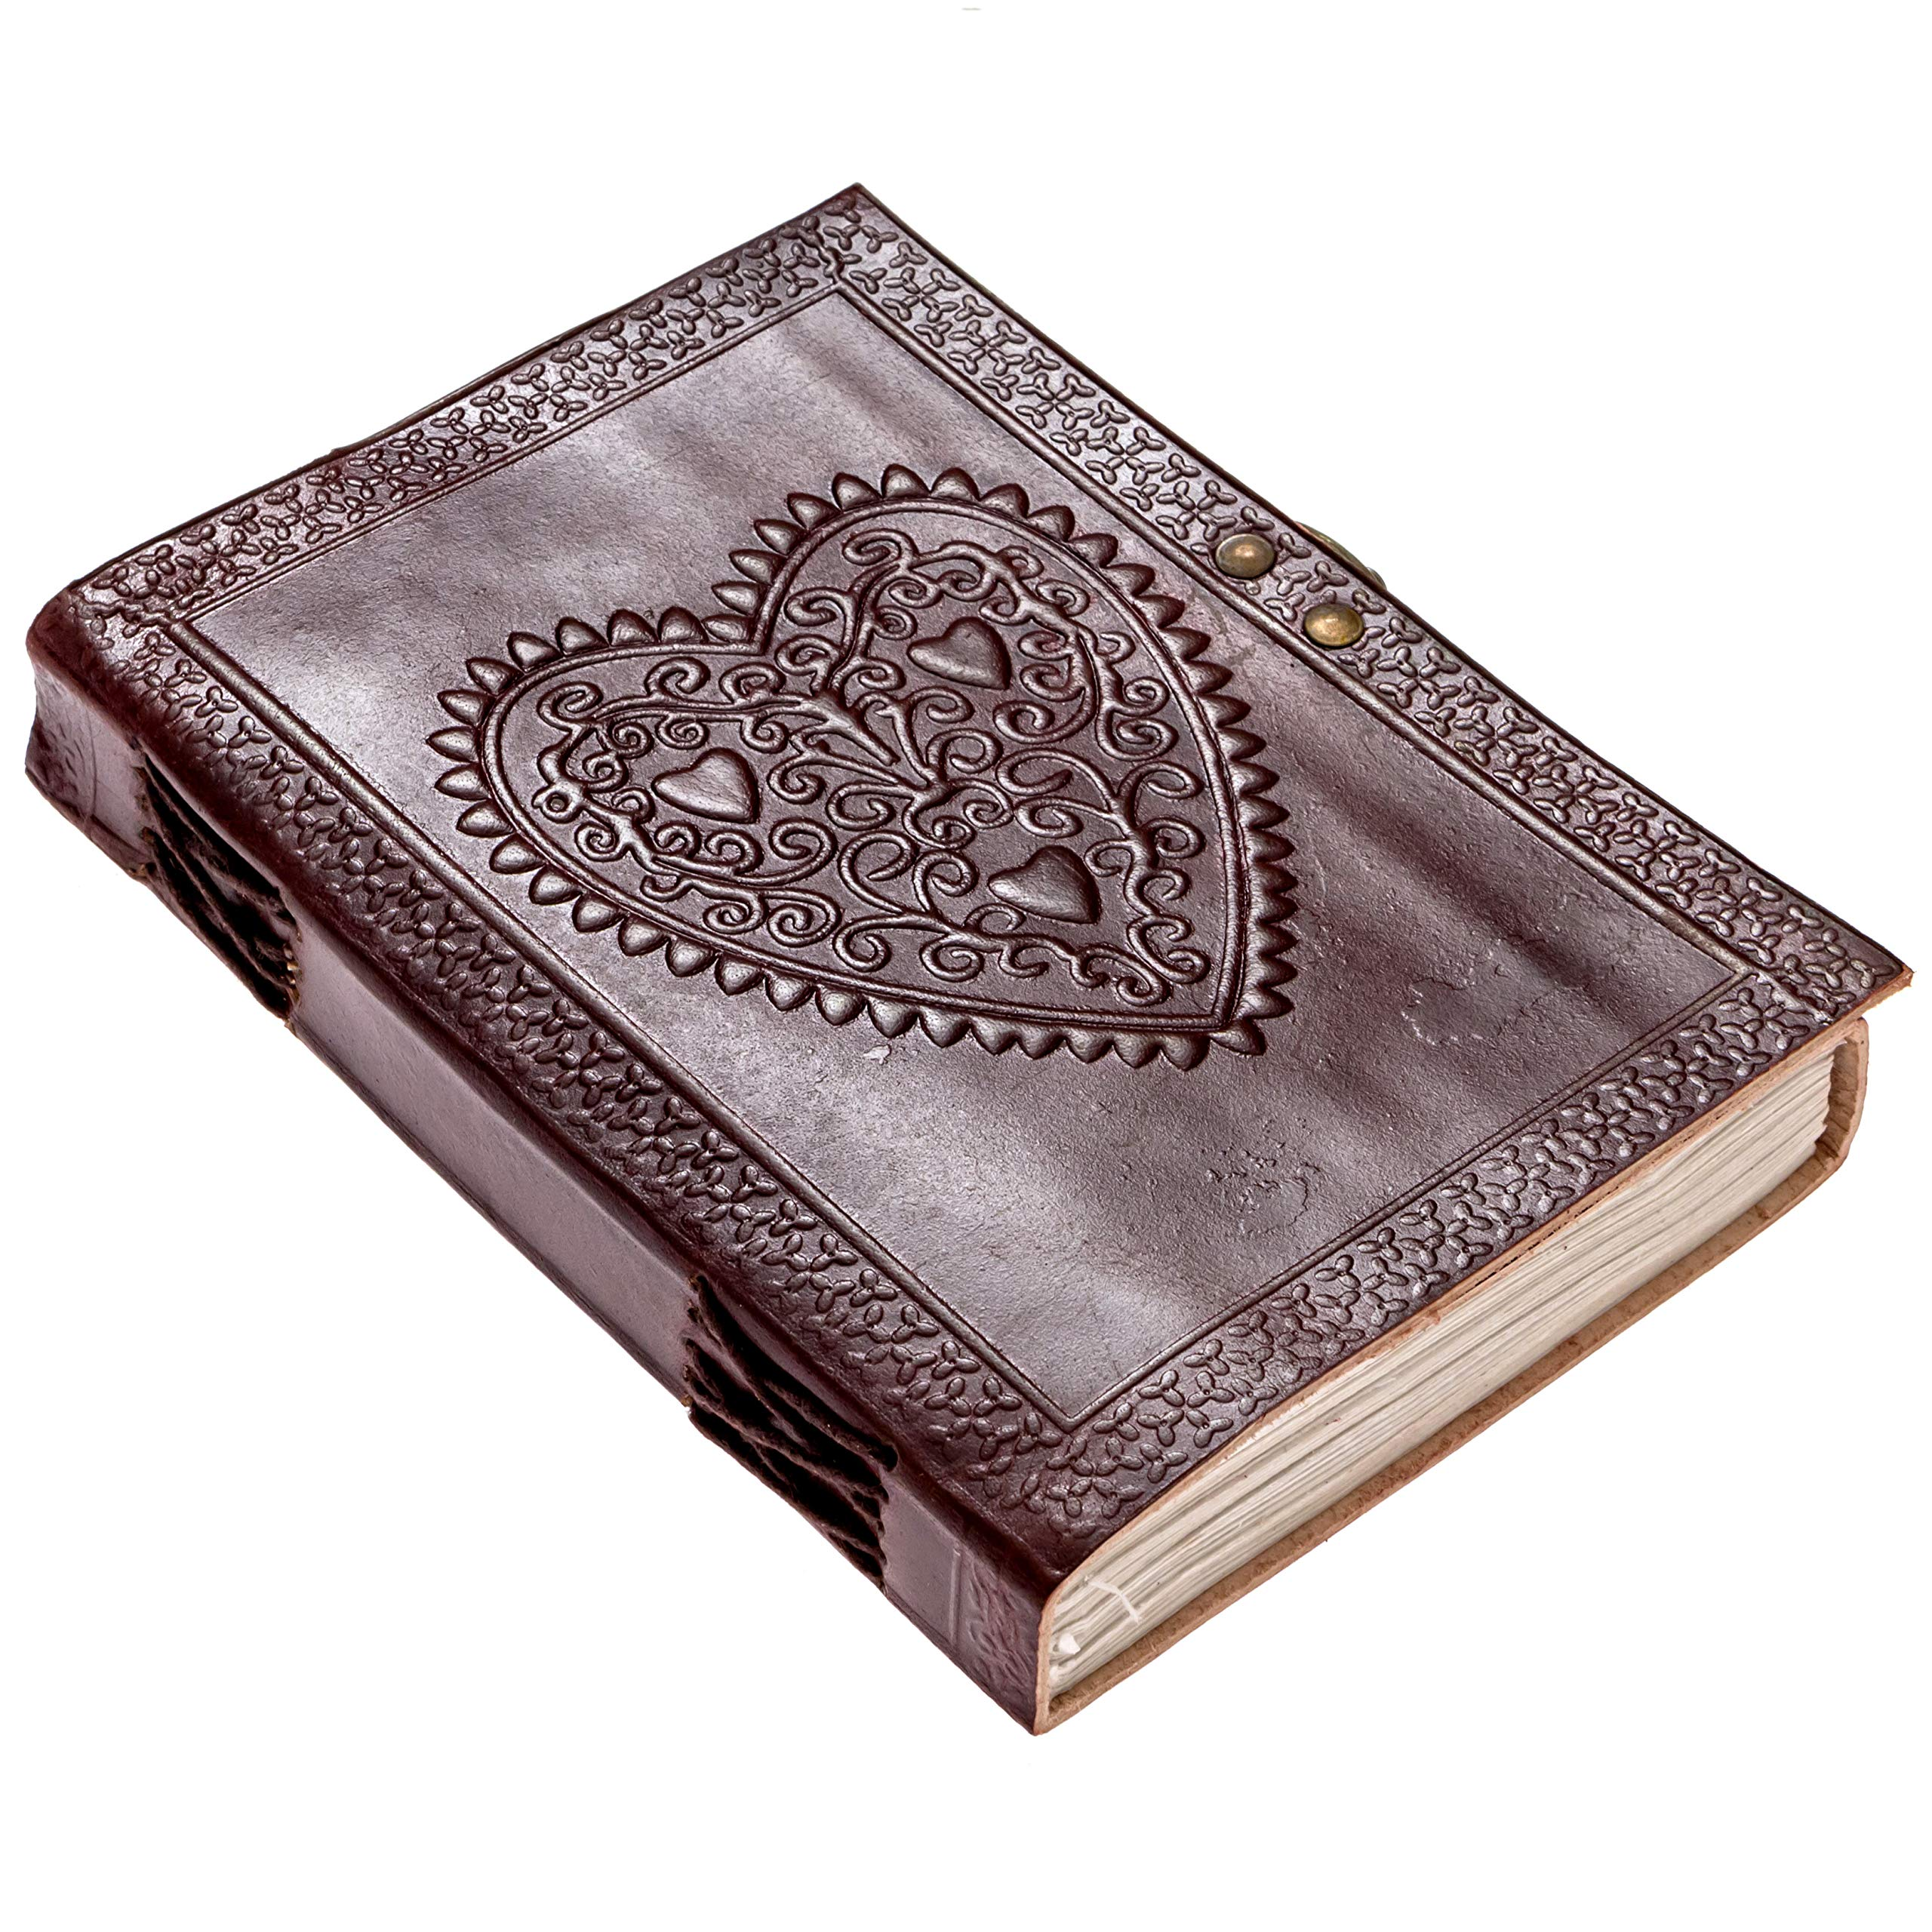 BROWN LEATHER JOURNAL Heart Engraved Handmade Notebook 7x5 Unlined Paper Diary Sketchpad For Men & Women